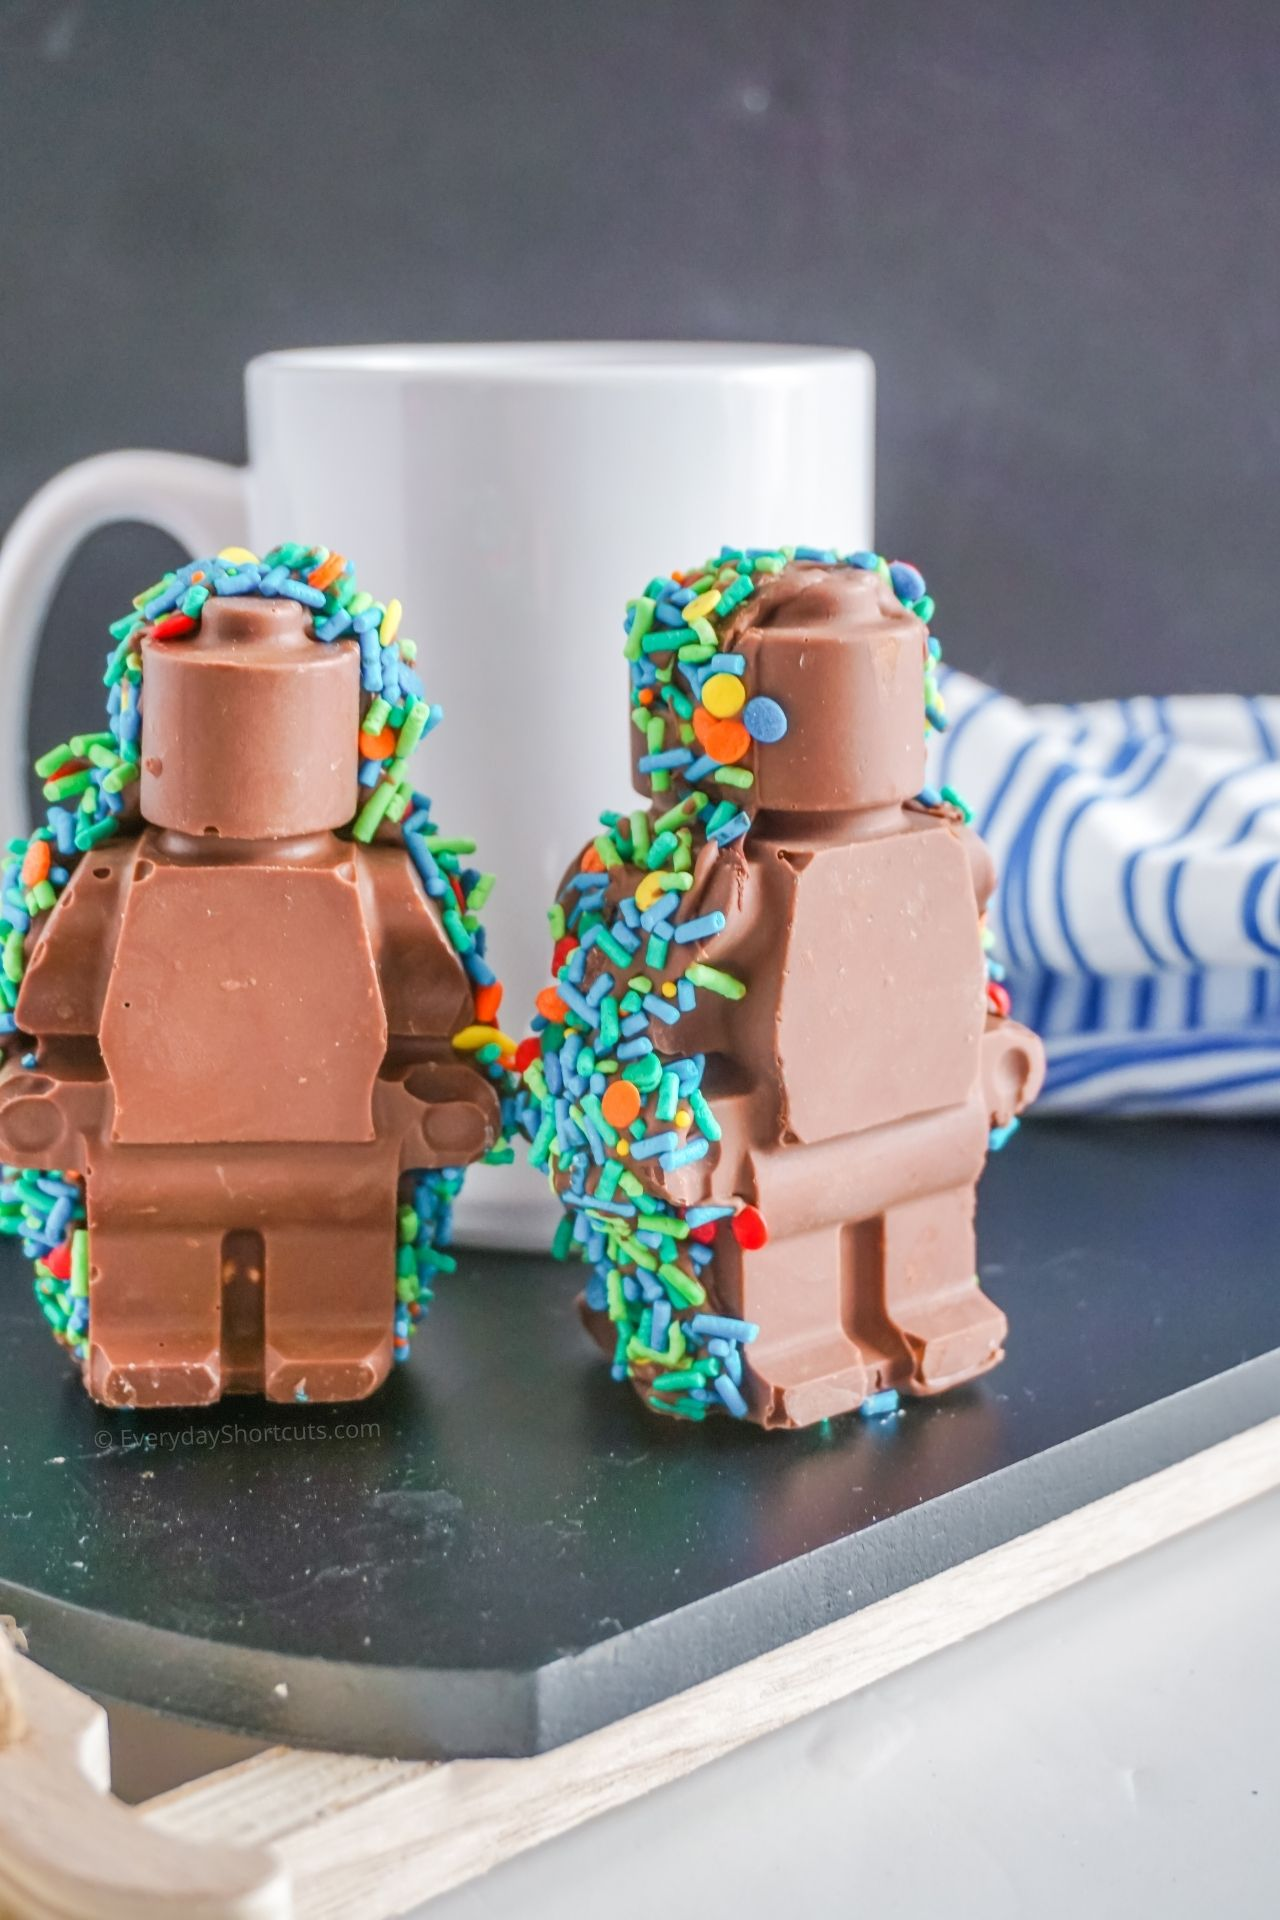 Lego Man Hot Chocolate Bombs